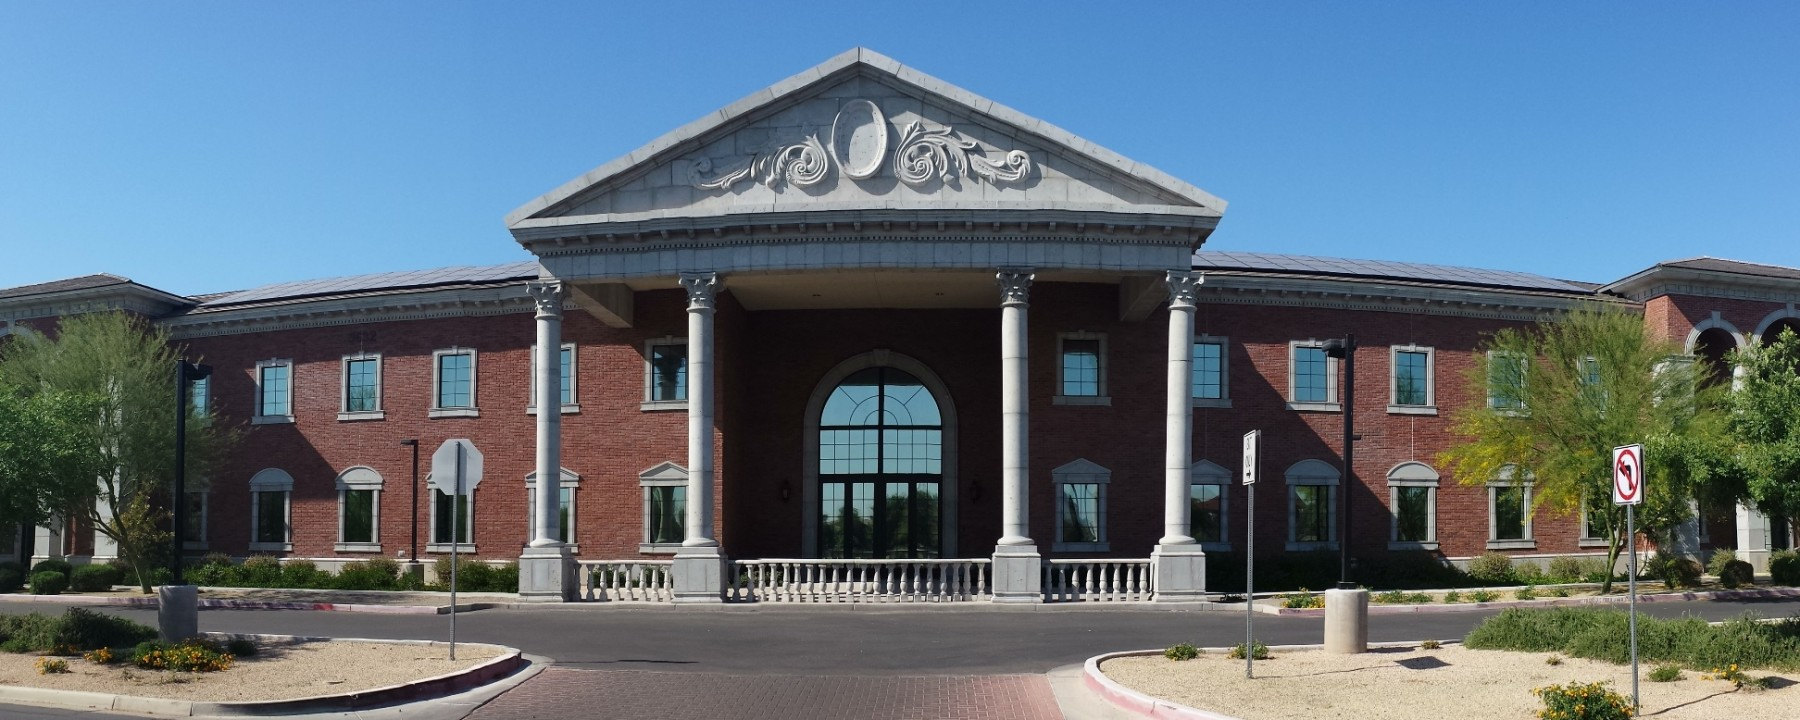 Mesa Precast Project - Gilbert Christian High School | Architectural GFRC | Building Veneer, Columns, Corinthian Capitals, Wainscots, Ornamental Elements